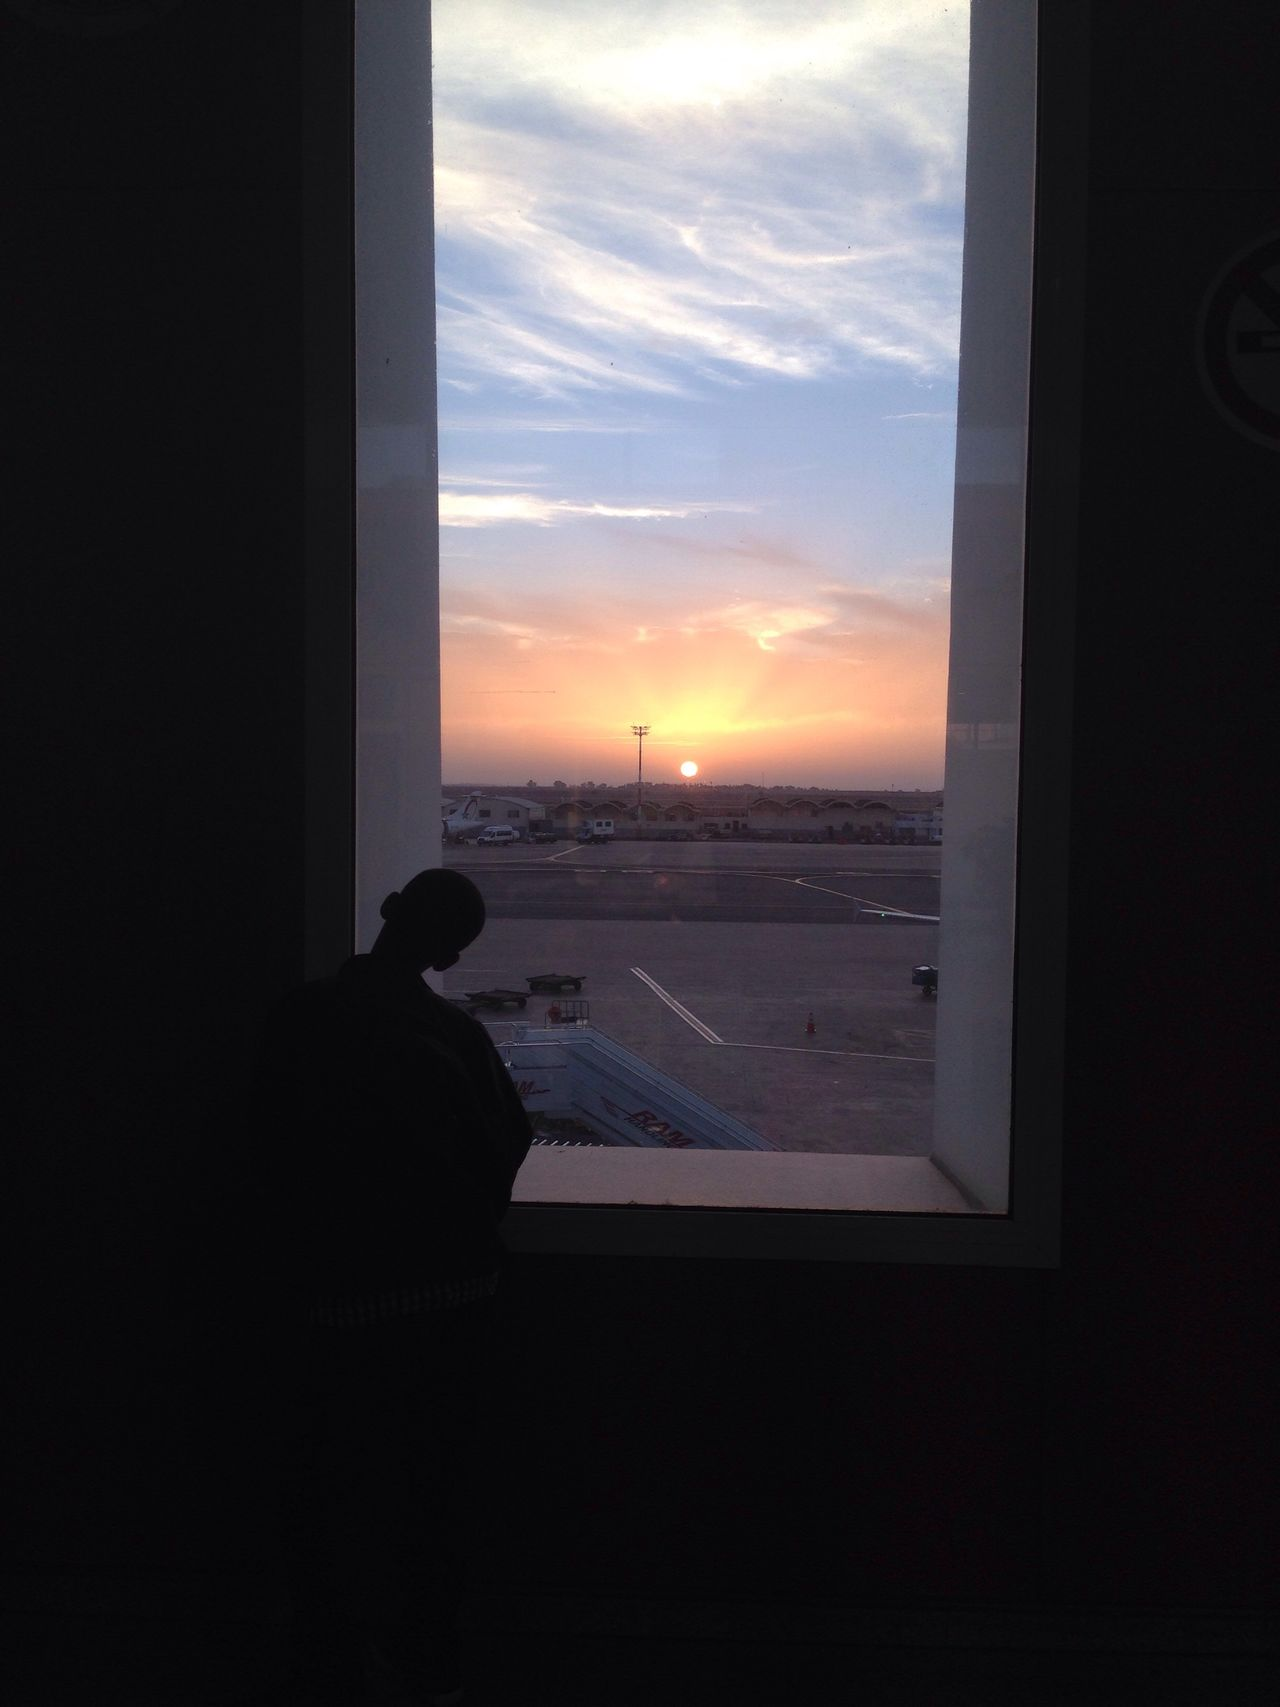 Looking Through Window Sunset Sky Rear View Indoors  Freedom Lifestyles Aeroport ✈ Aeroportmohamedv